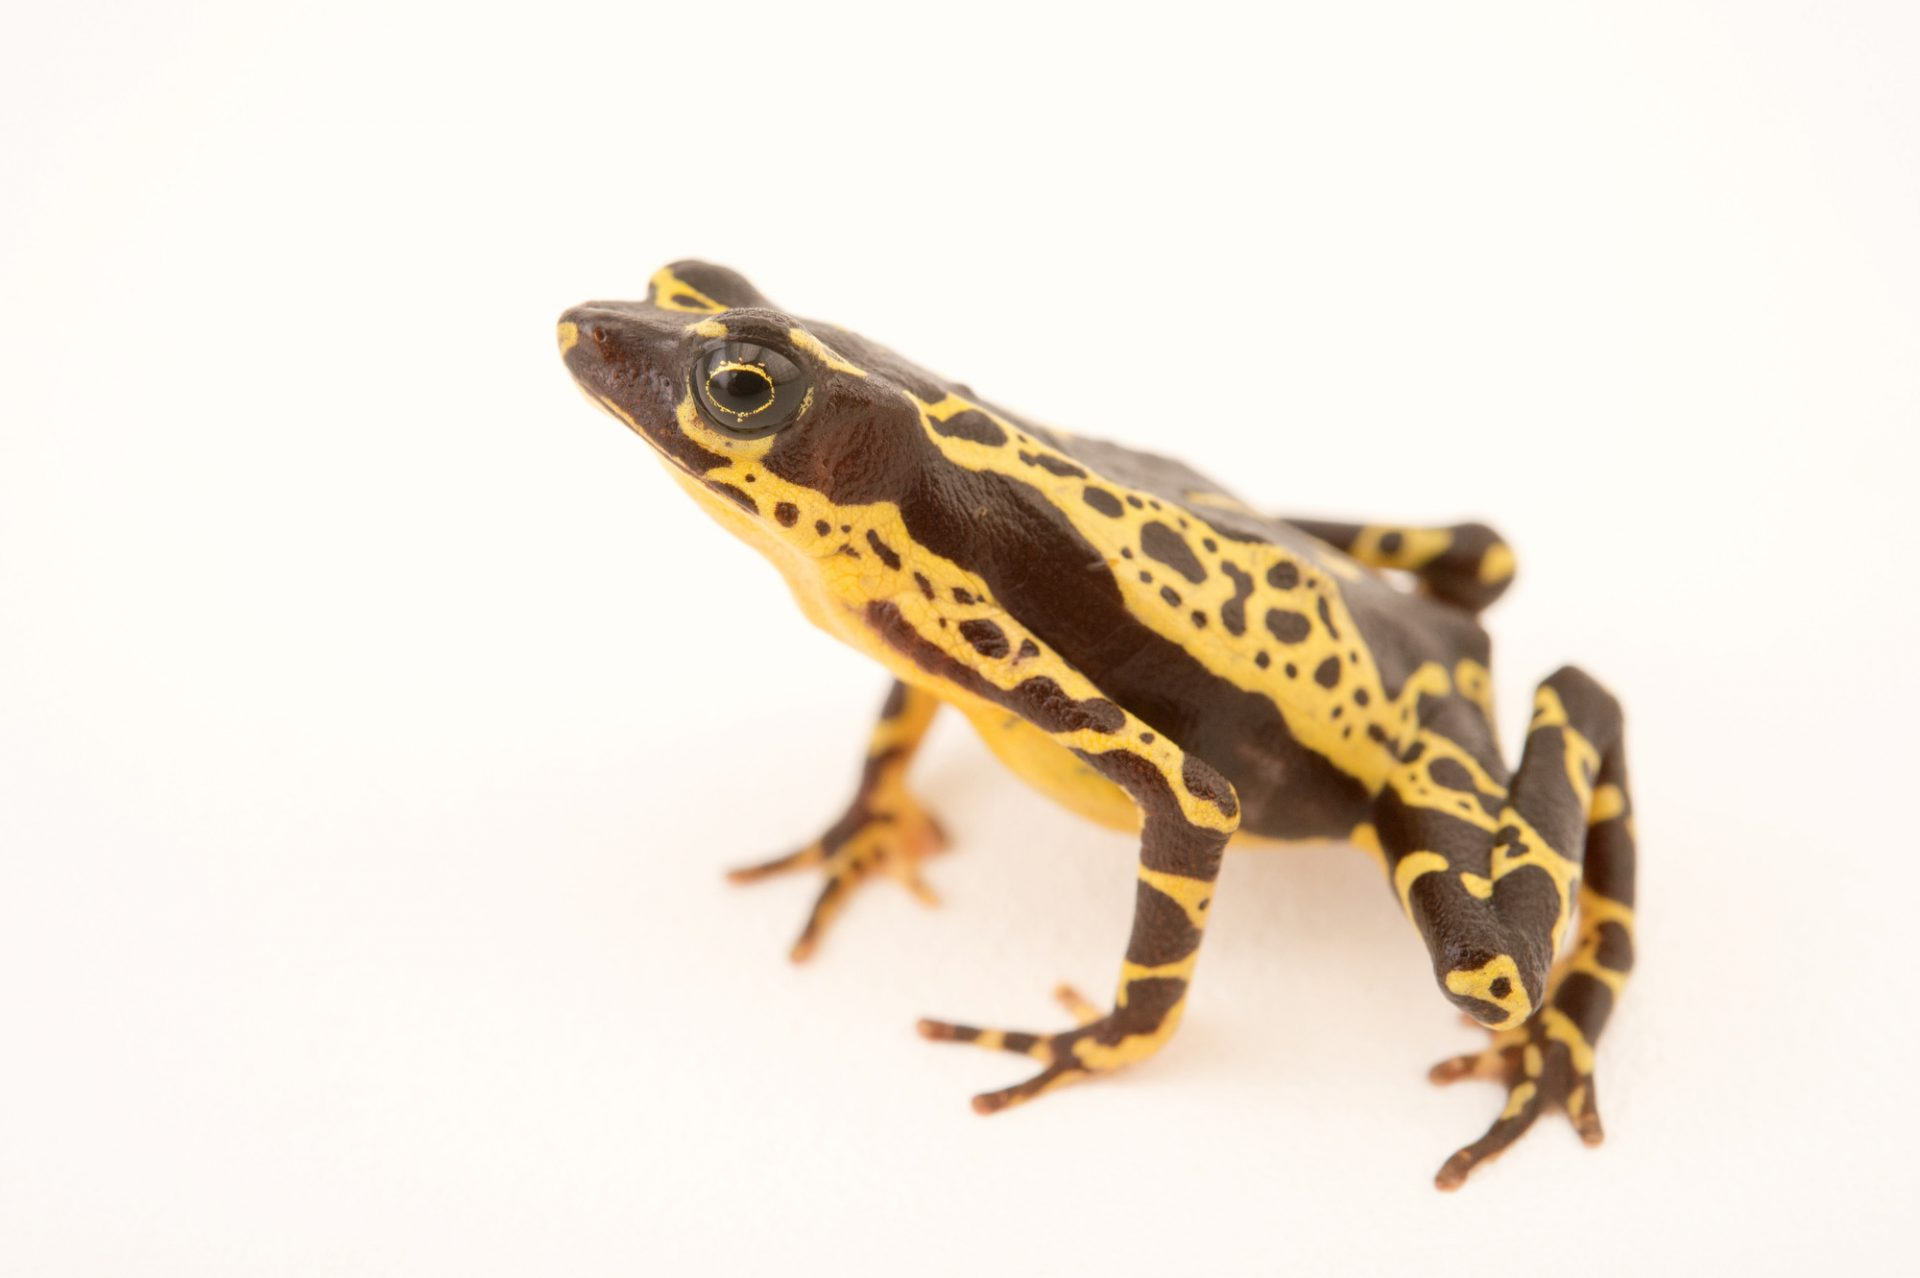 Picture of a vulnerable Pebas stubfoot toad (Atelopus spumarius hoogmoedi) from a private collection.